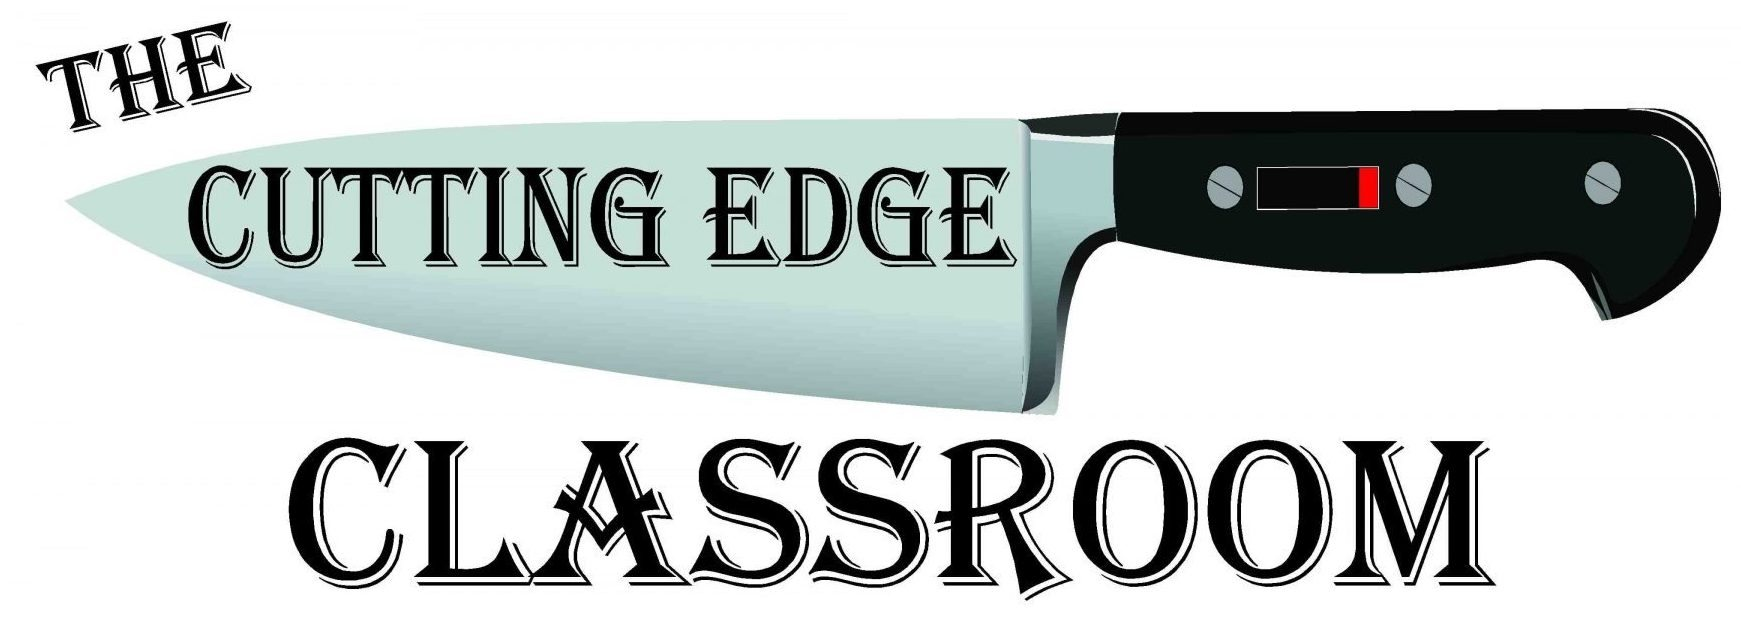 Cutting Edge Classroom